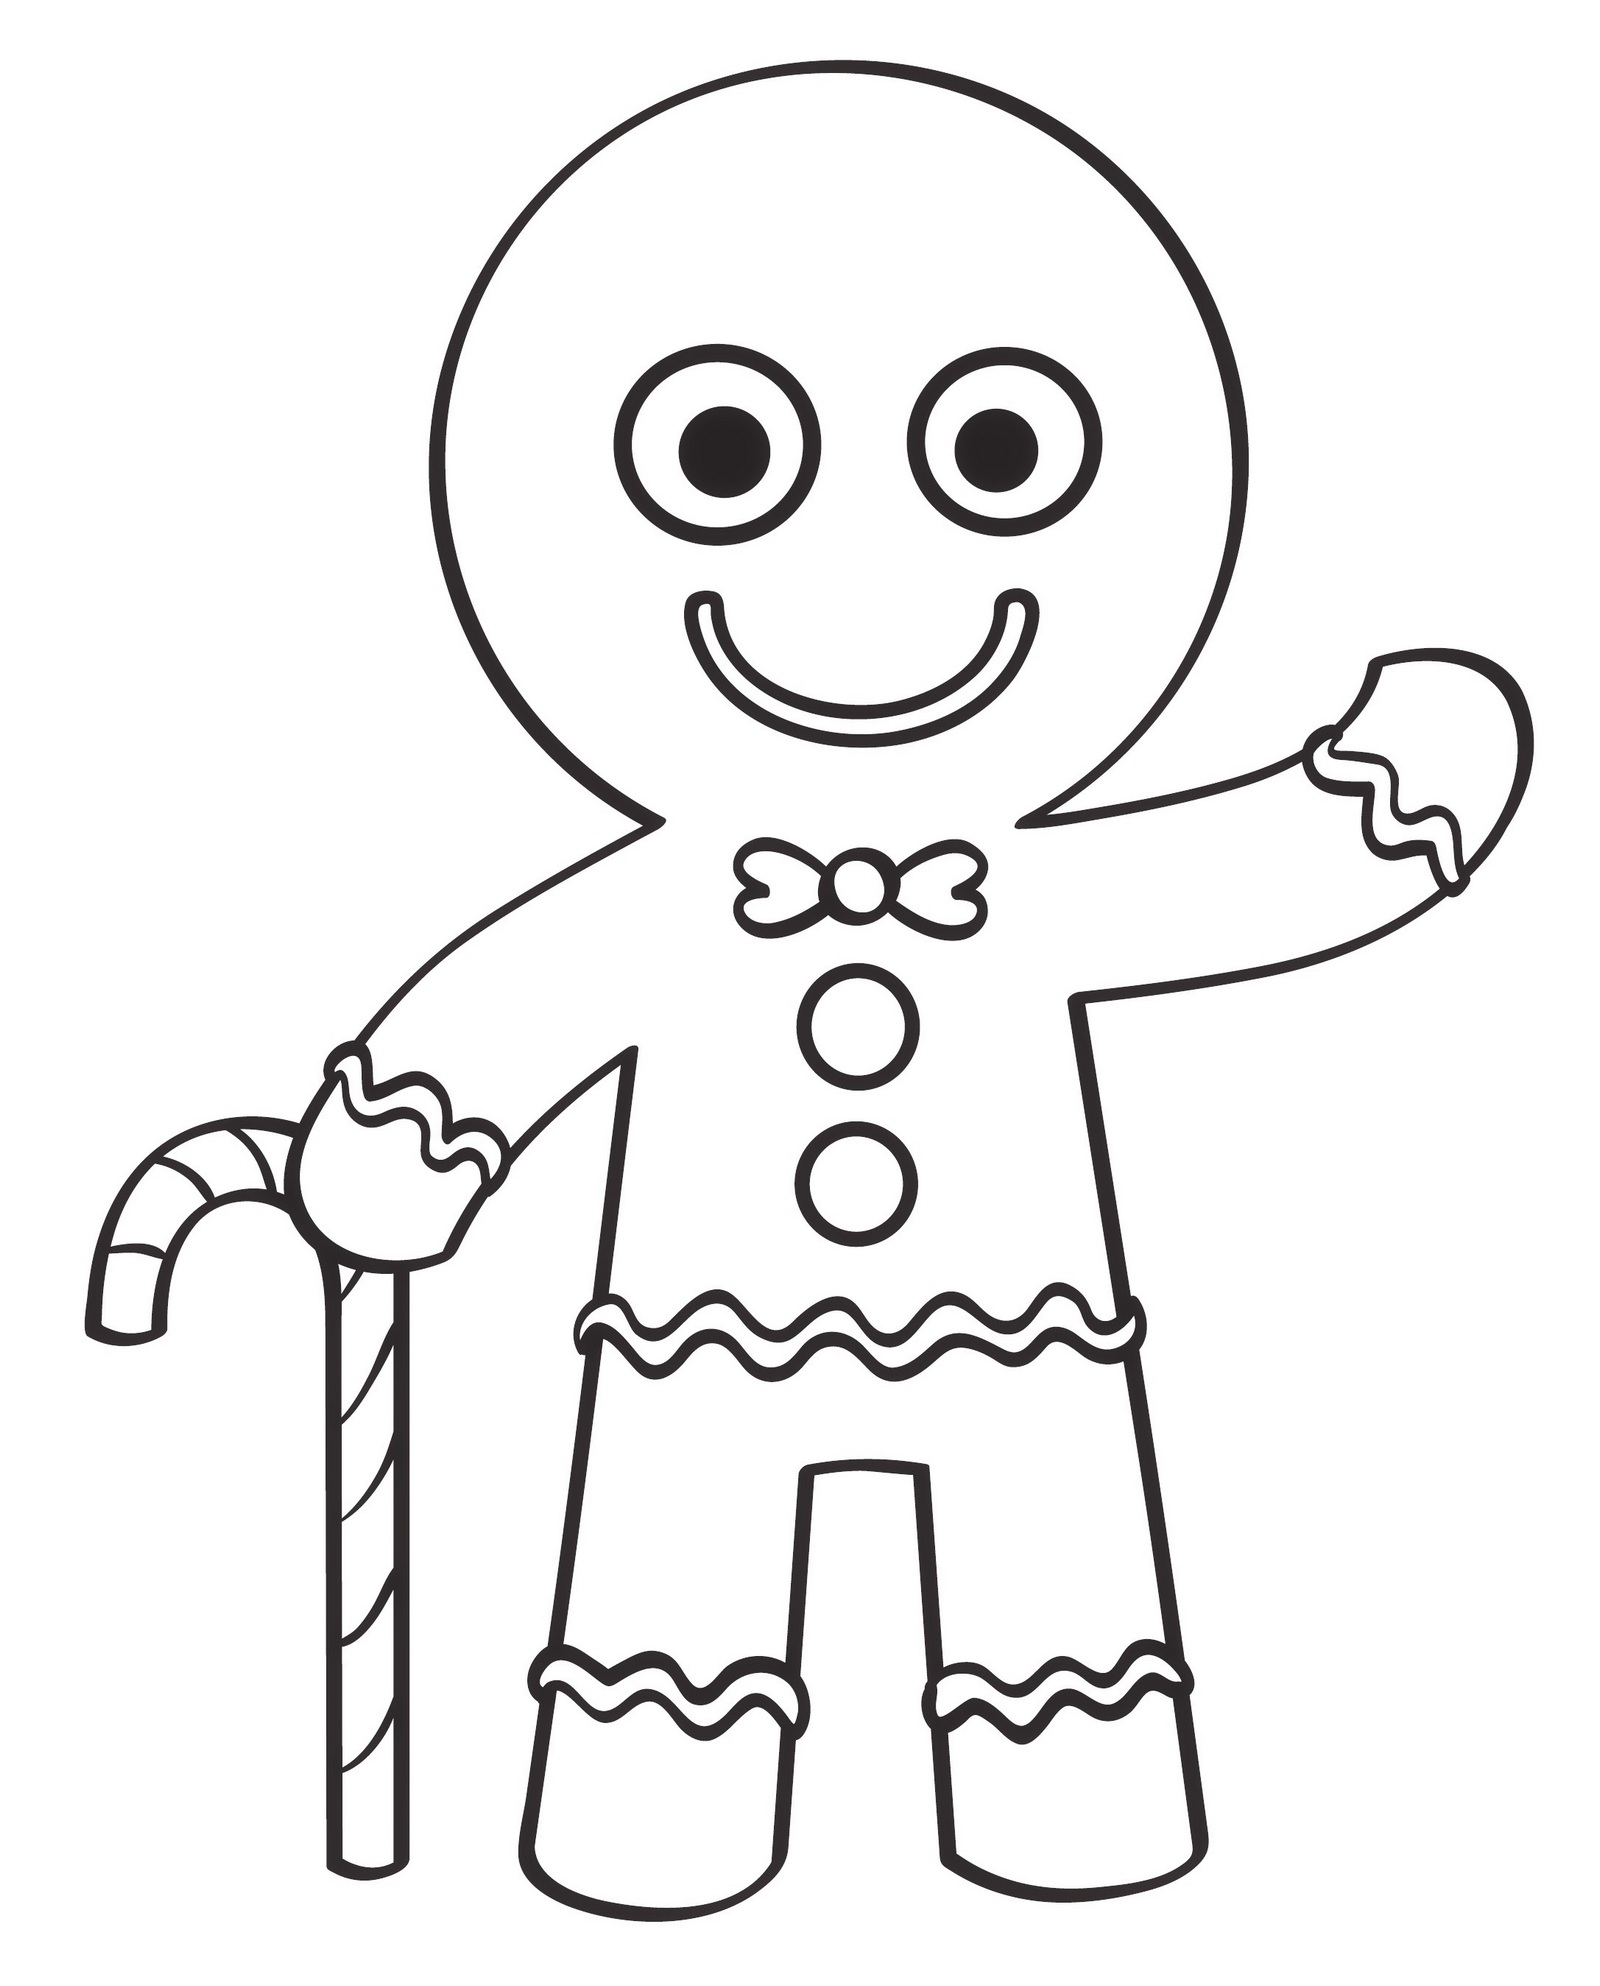 Printable Gingerbread Man Coloring Book Christmas Activities